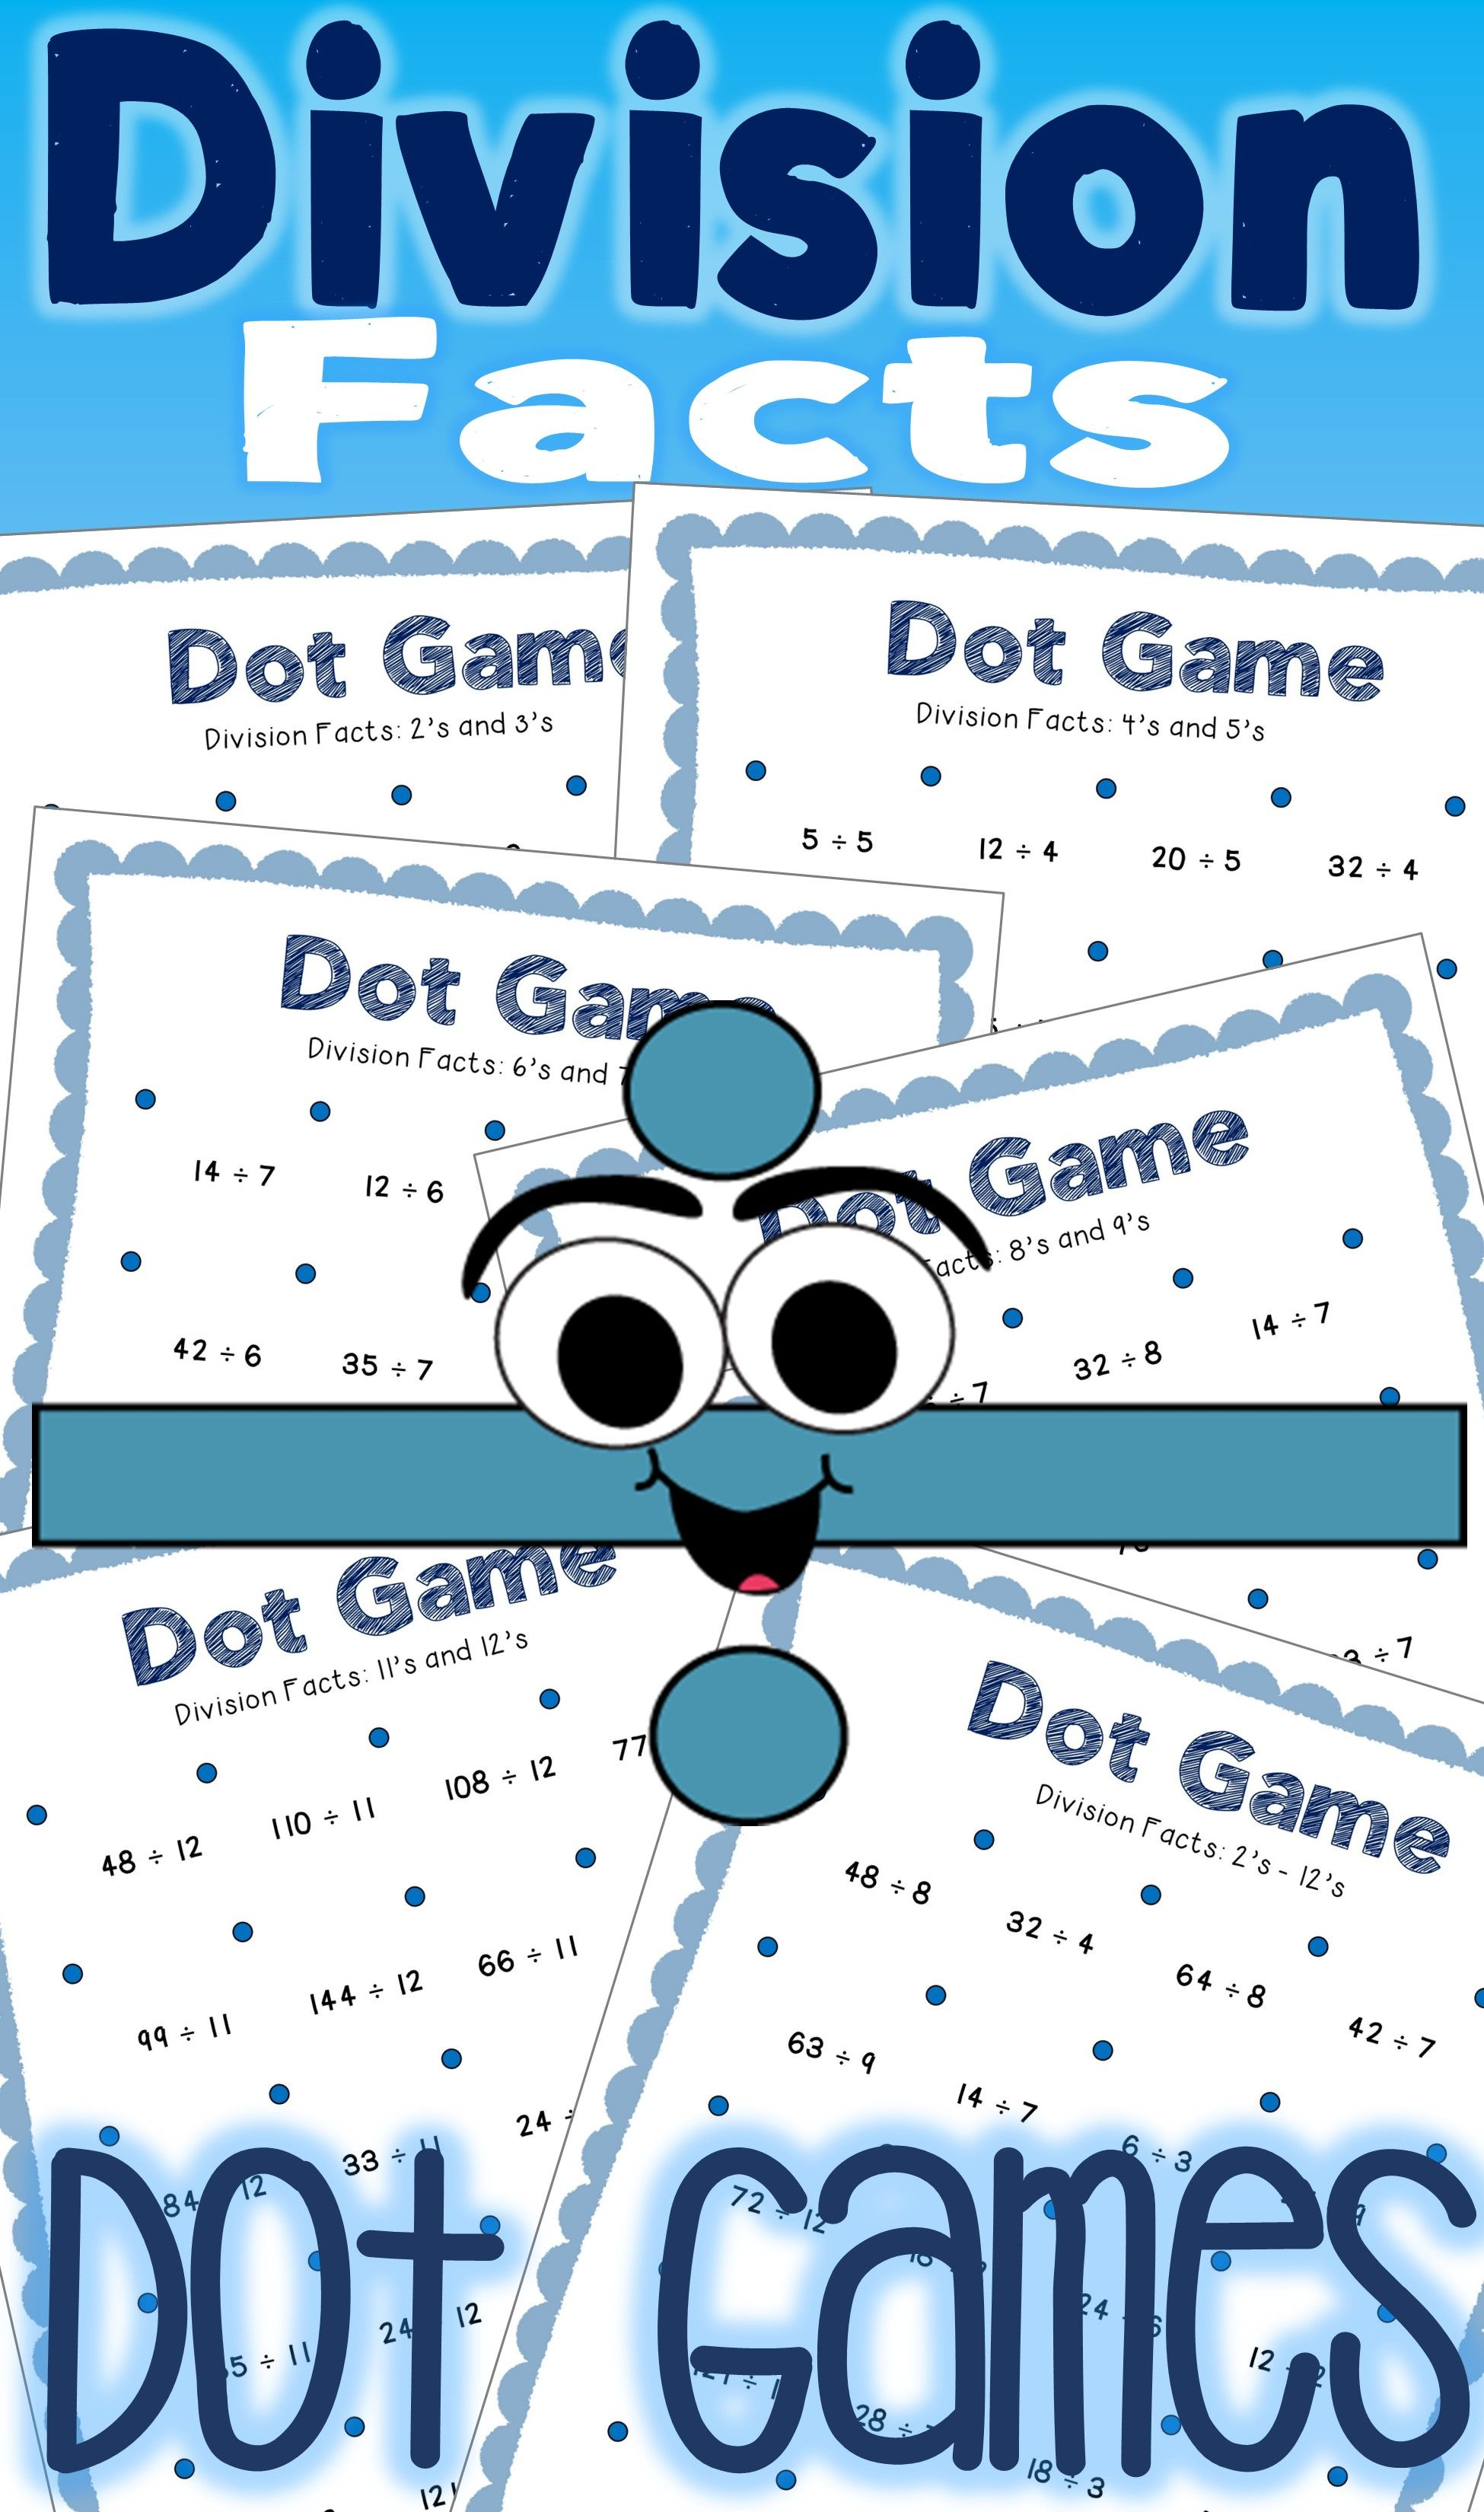 Division Facts Math Centers: Dot Games | Add, Subtract, Multiply ...